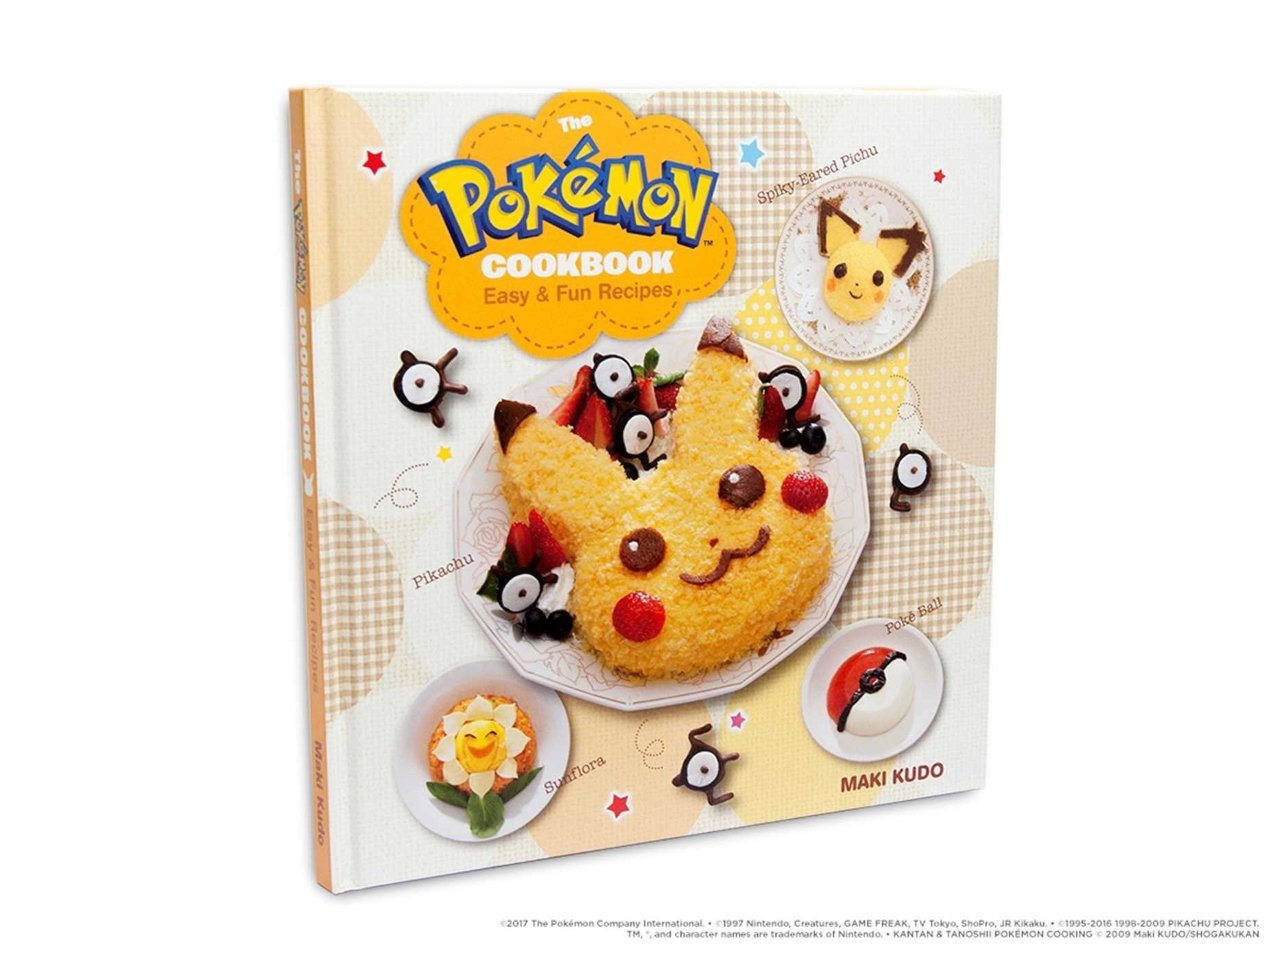 The Pokemon Cookbook - video game cookbook gifts 2020